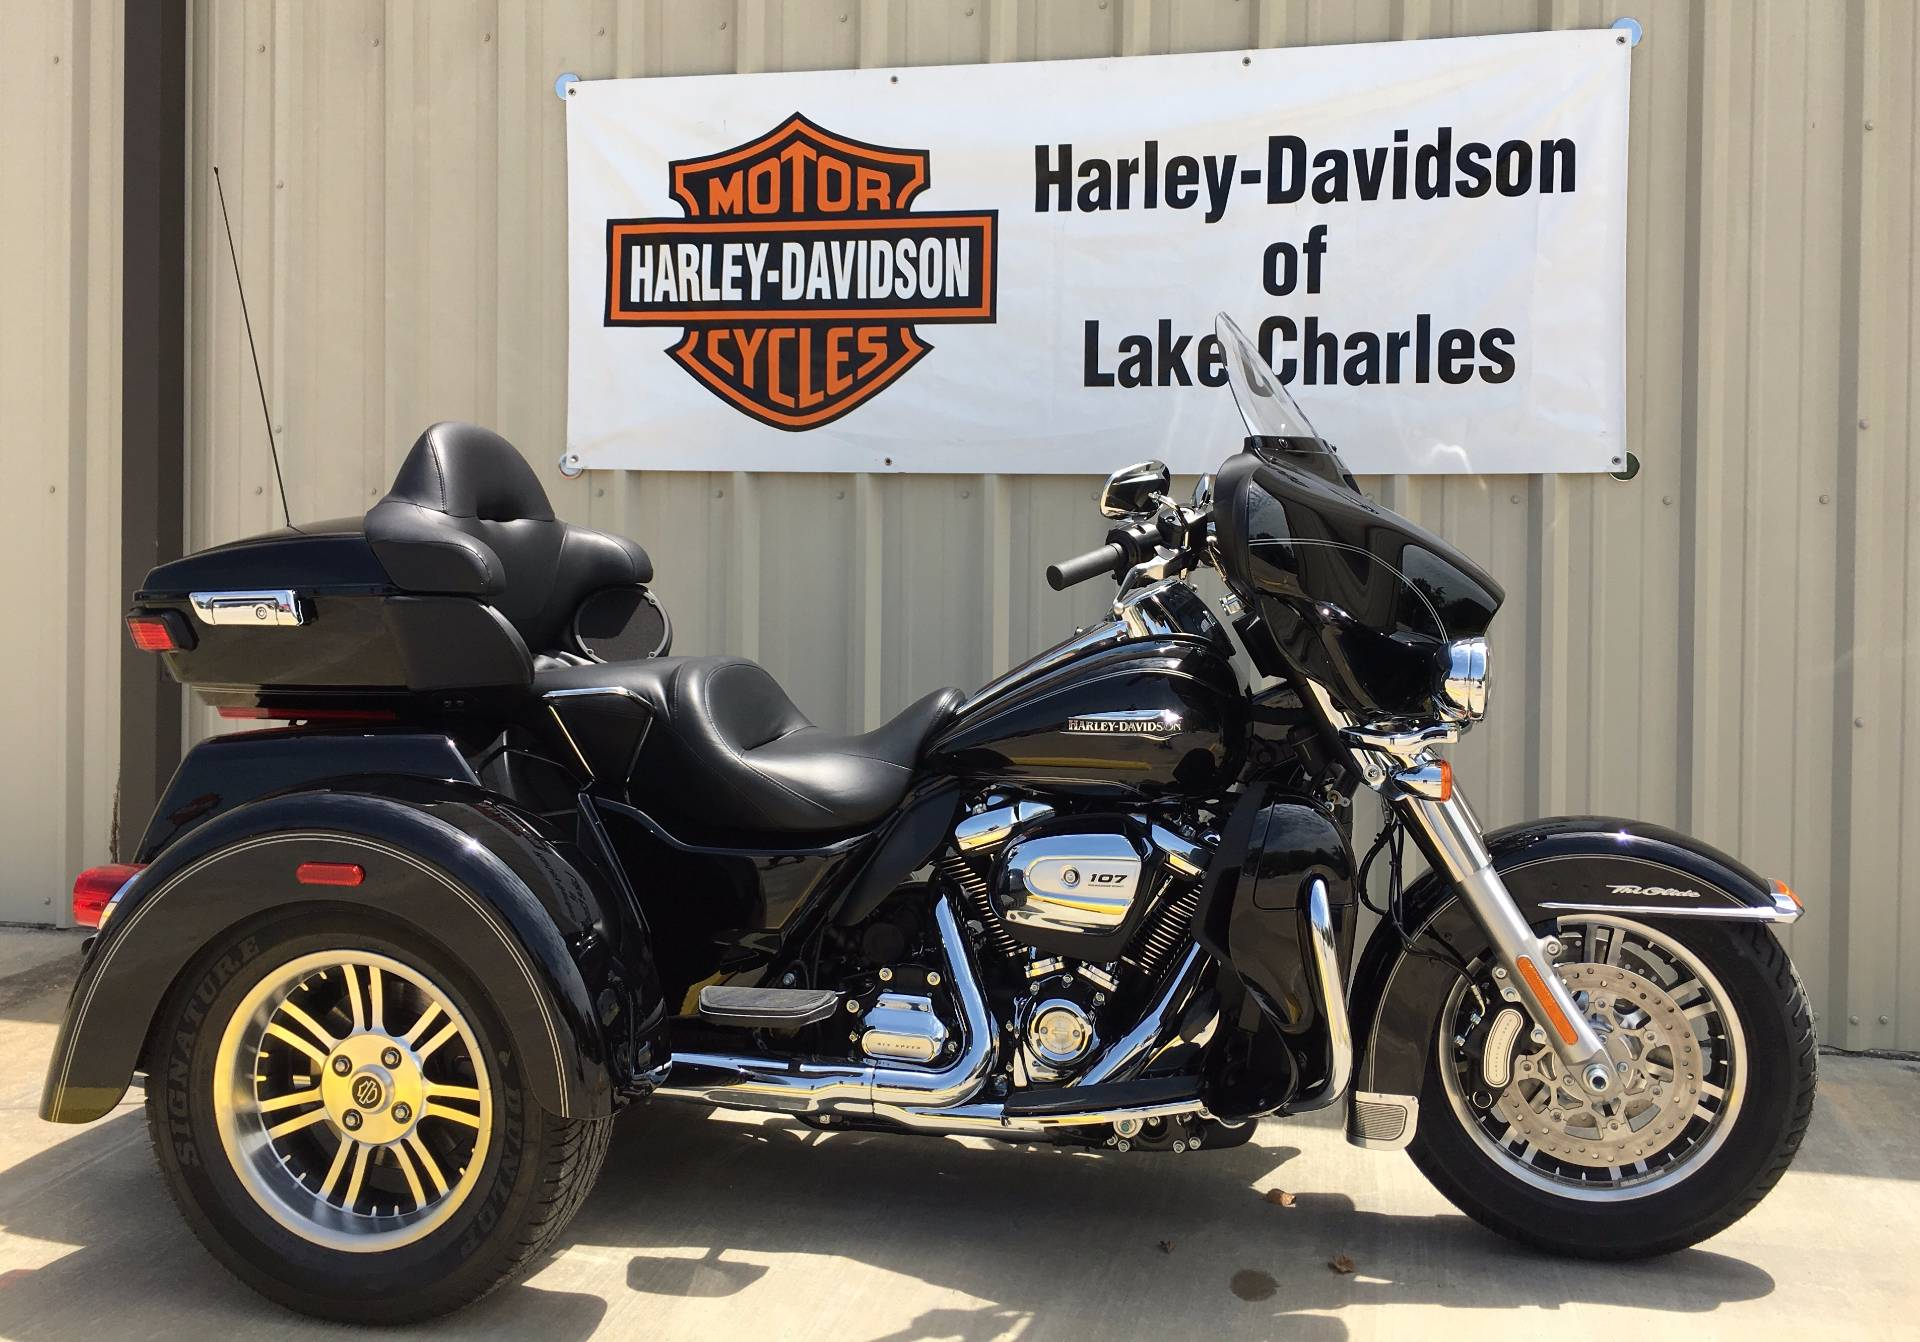 Harley Davidson 2017 Tri Glide Ultra Price Specs Review: New 2017 Harley-Davidson Tri Glide® Ultra Trikes In Lake